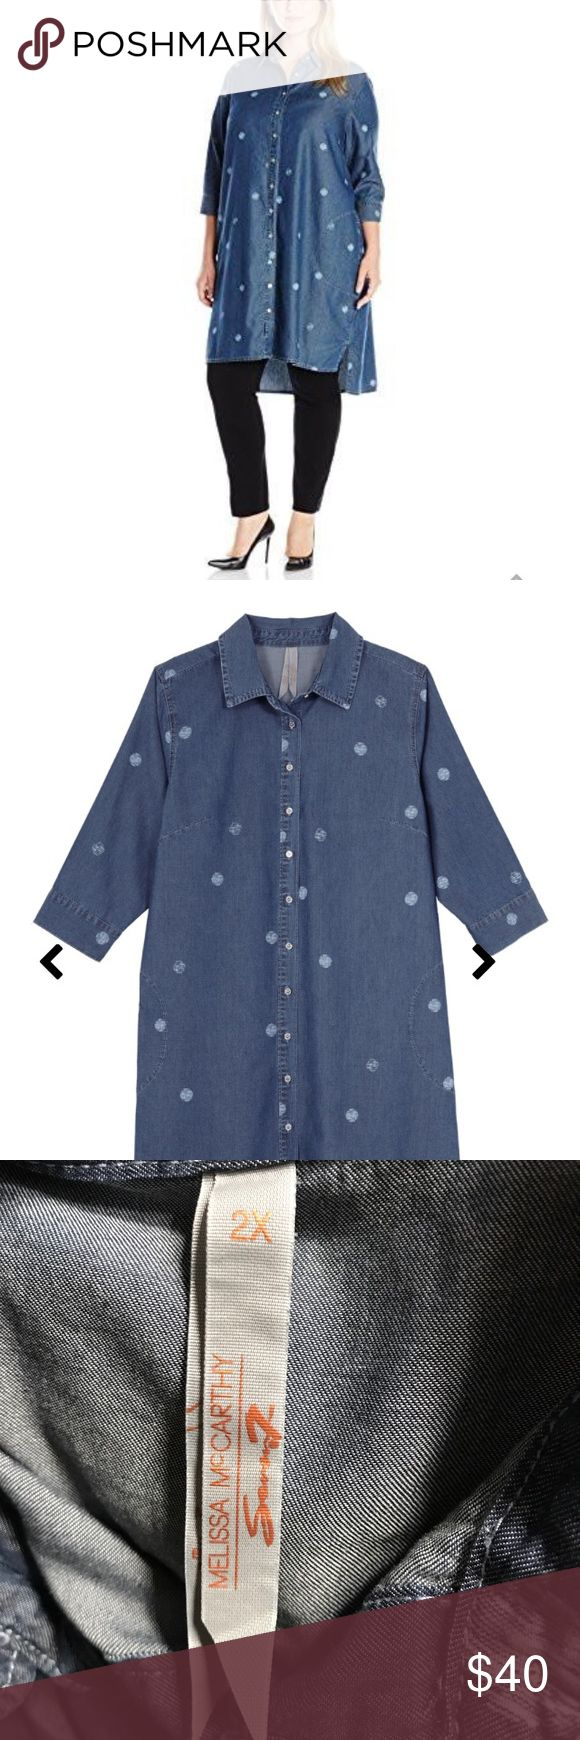 Melissa Mc Carthy Seven7 Tunic, Juliette Dot Denim Tunic 3/4 sleeve side pockets can be worn as a dress or long shirt just adorable and comfy! Melissa McCarthy Seven7 Dresses